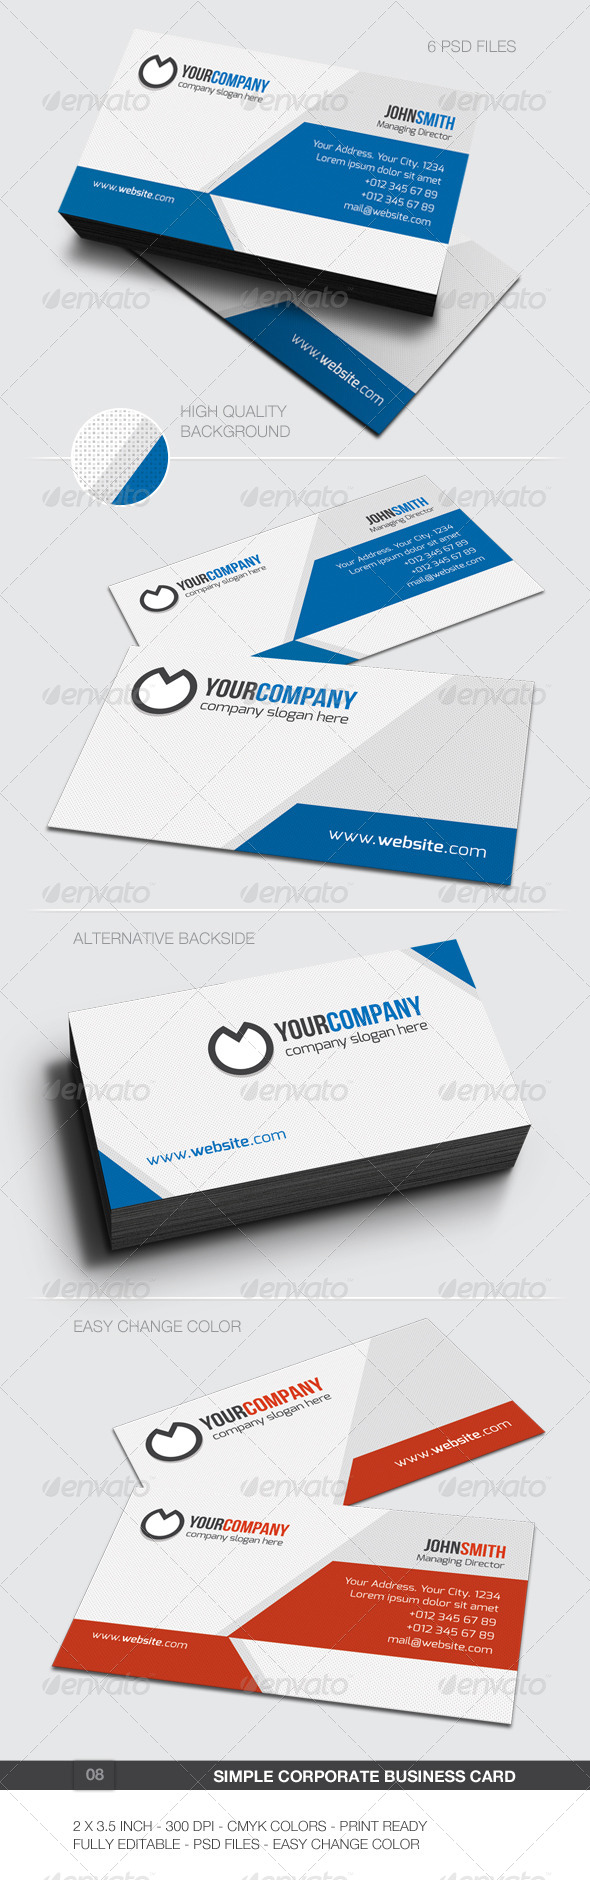 GraphicRiver Simple Corporate Business Card 08 5988906